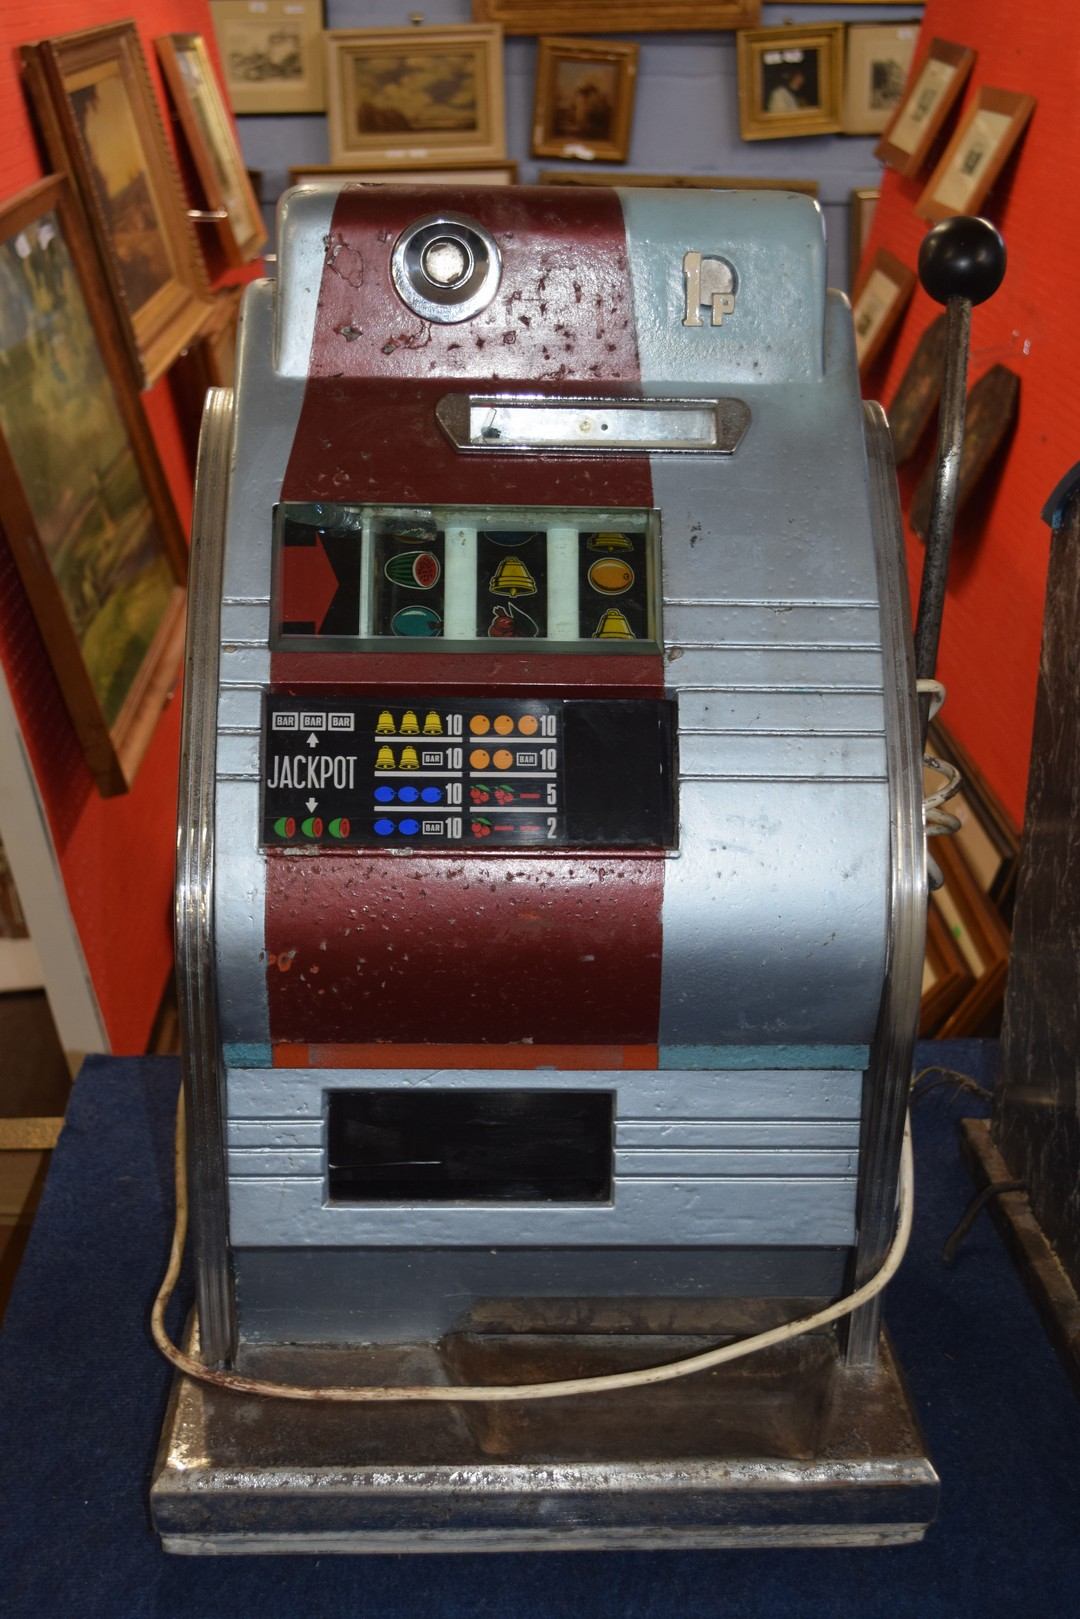 Vintage penny fair one armed bandit fruit machine, with light up display, 68cm high Condition: